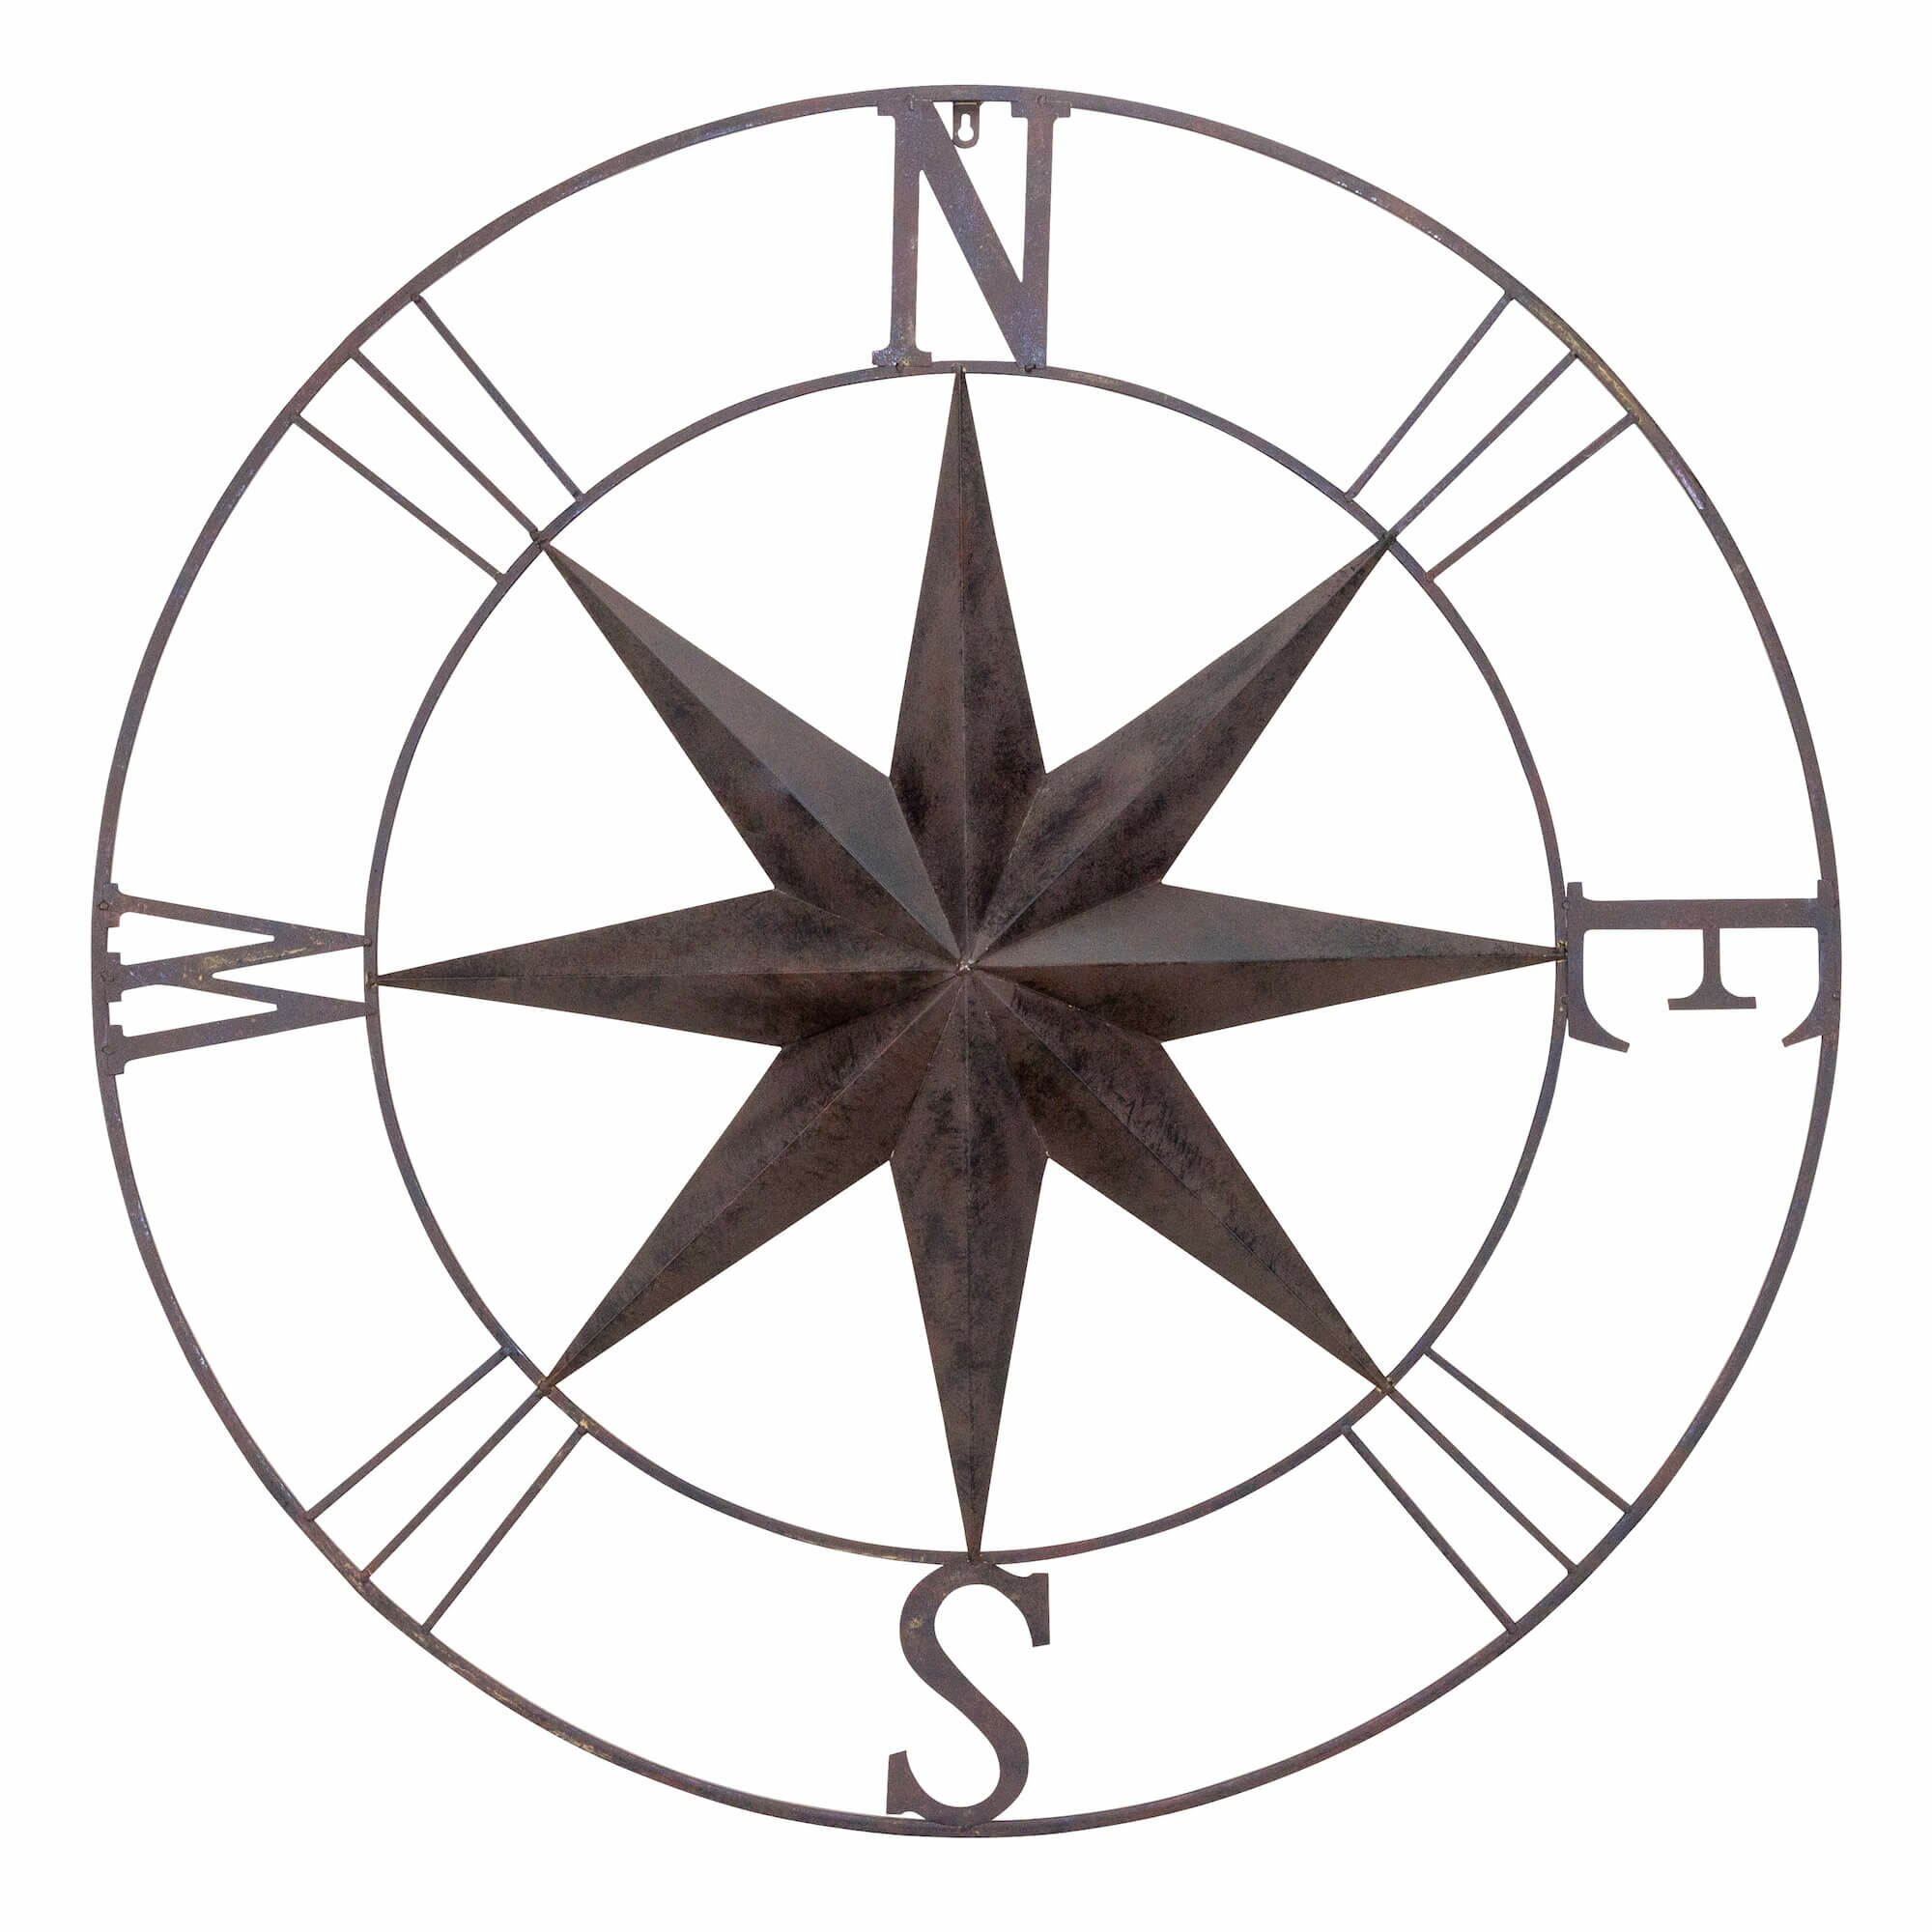 Antique metal compass rose wall decor wayfair